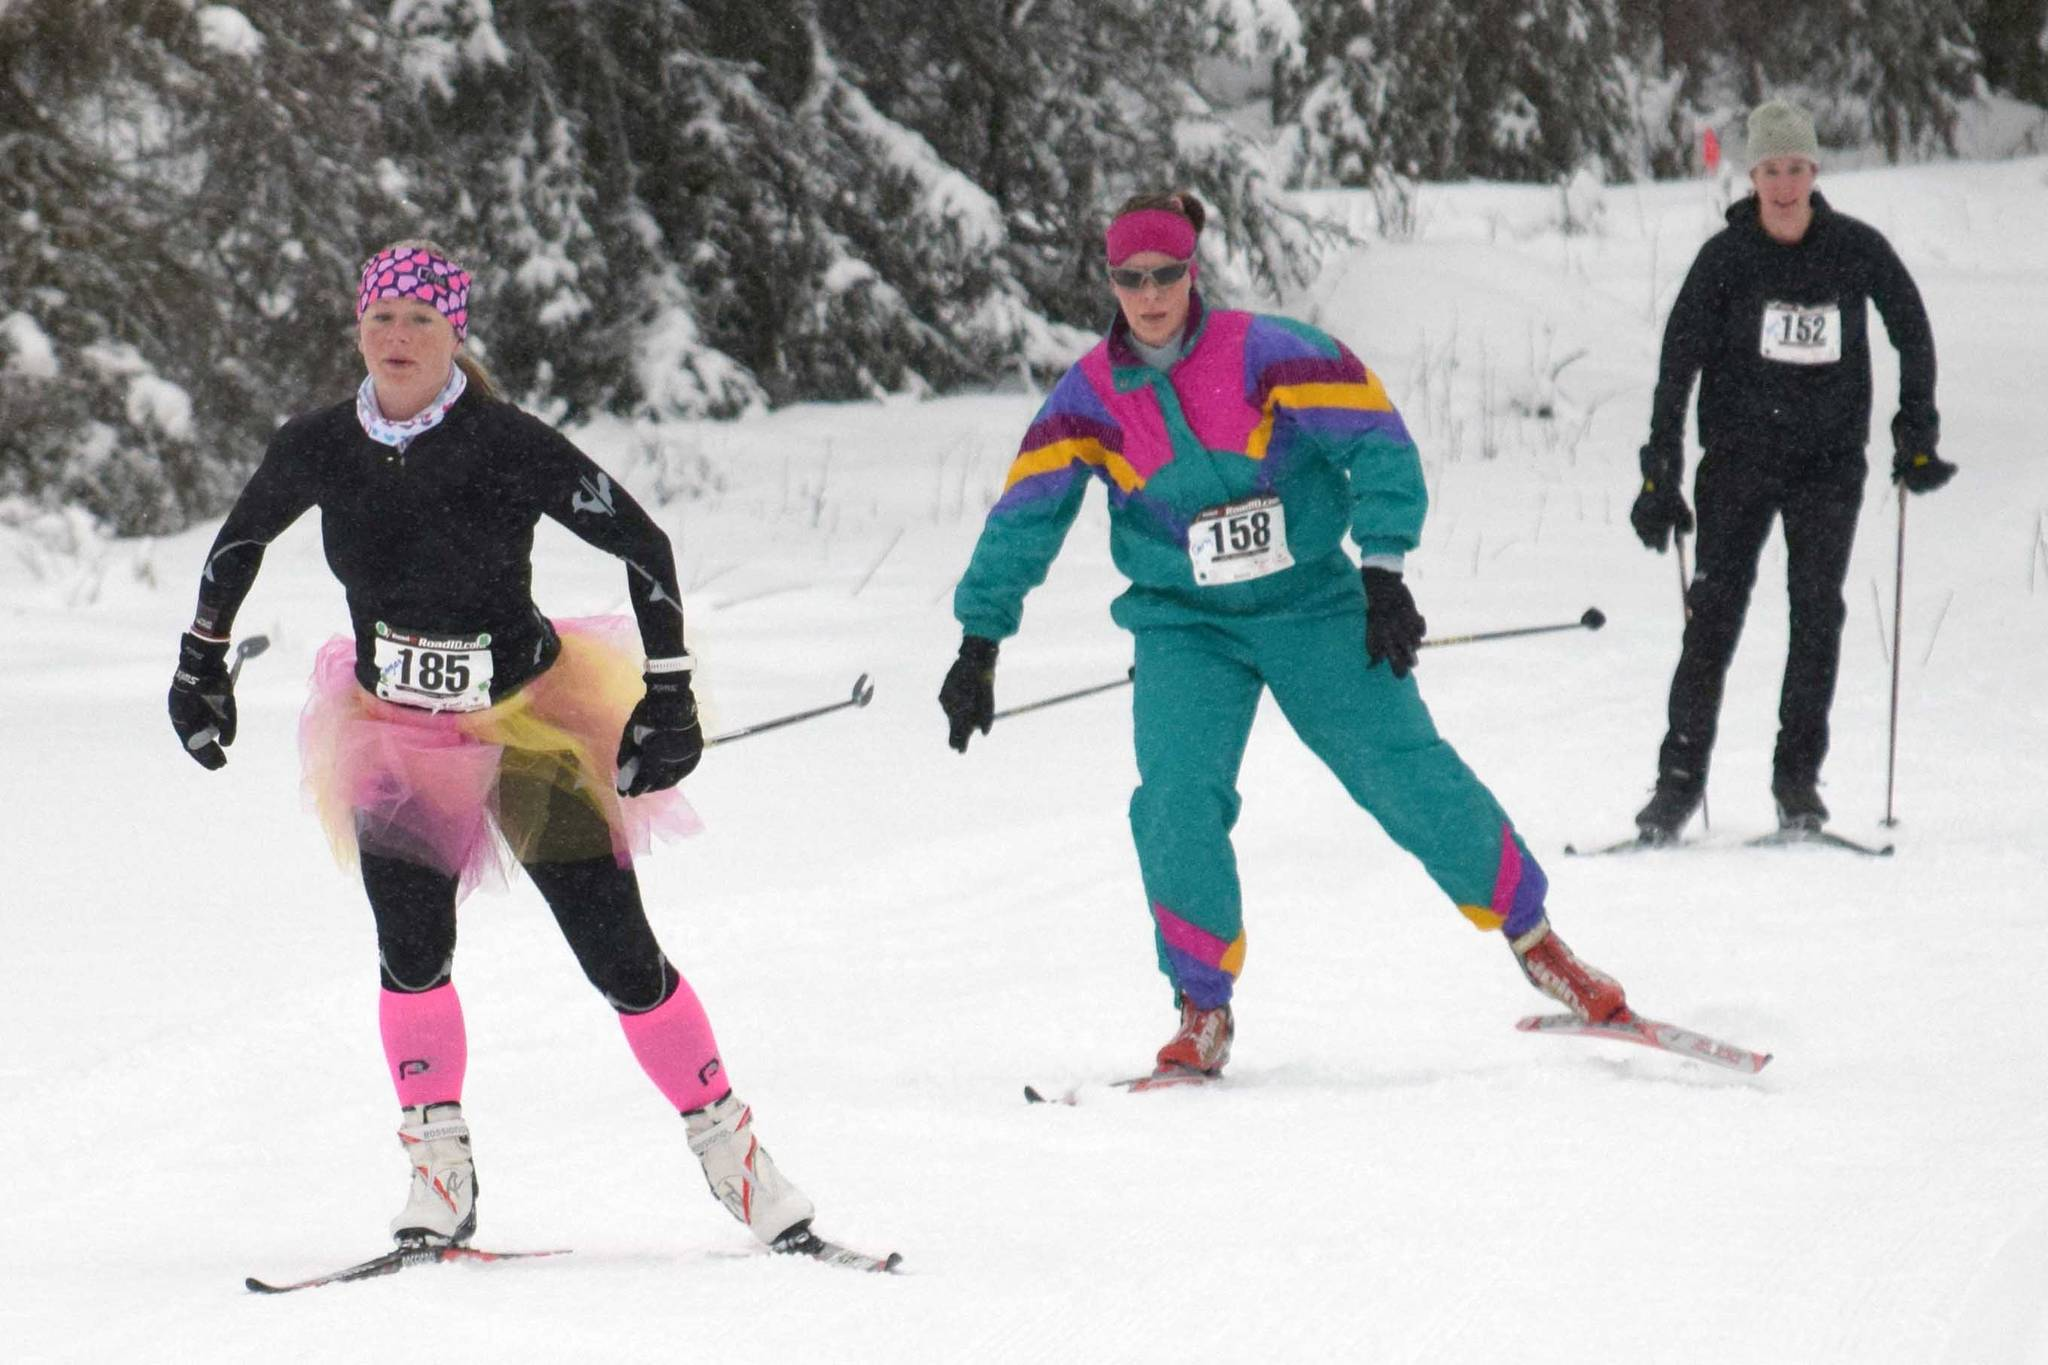 Eventual race winner Morgan Aldridge leads Carly Reimer and Amy Anderson at the Ski for Women on Sunday, Feb. 3, 2019, at Tsalteshi Trails. (Photo by Jeff Helminiak/Peninsula Clarion)